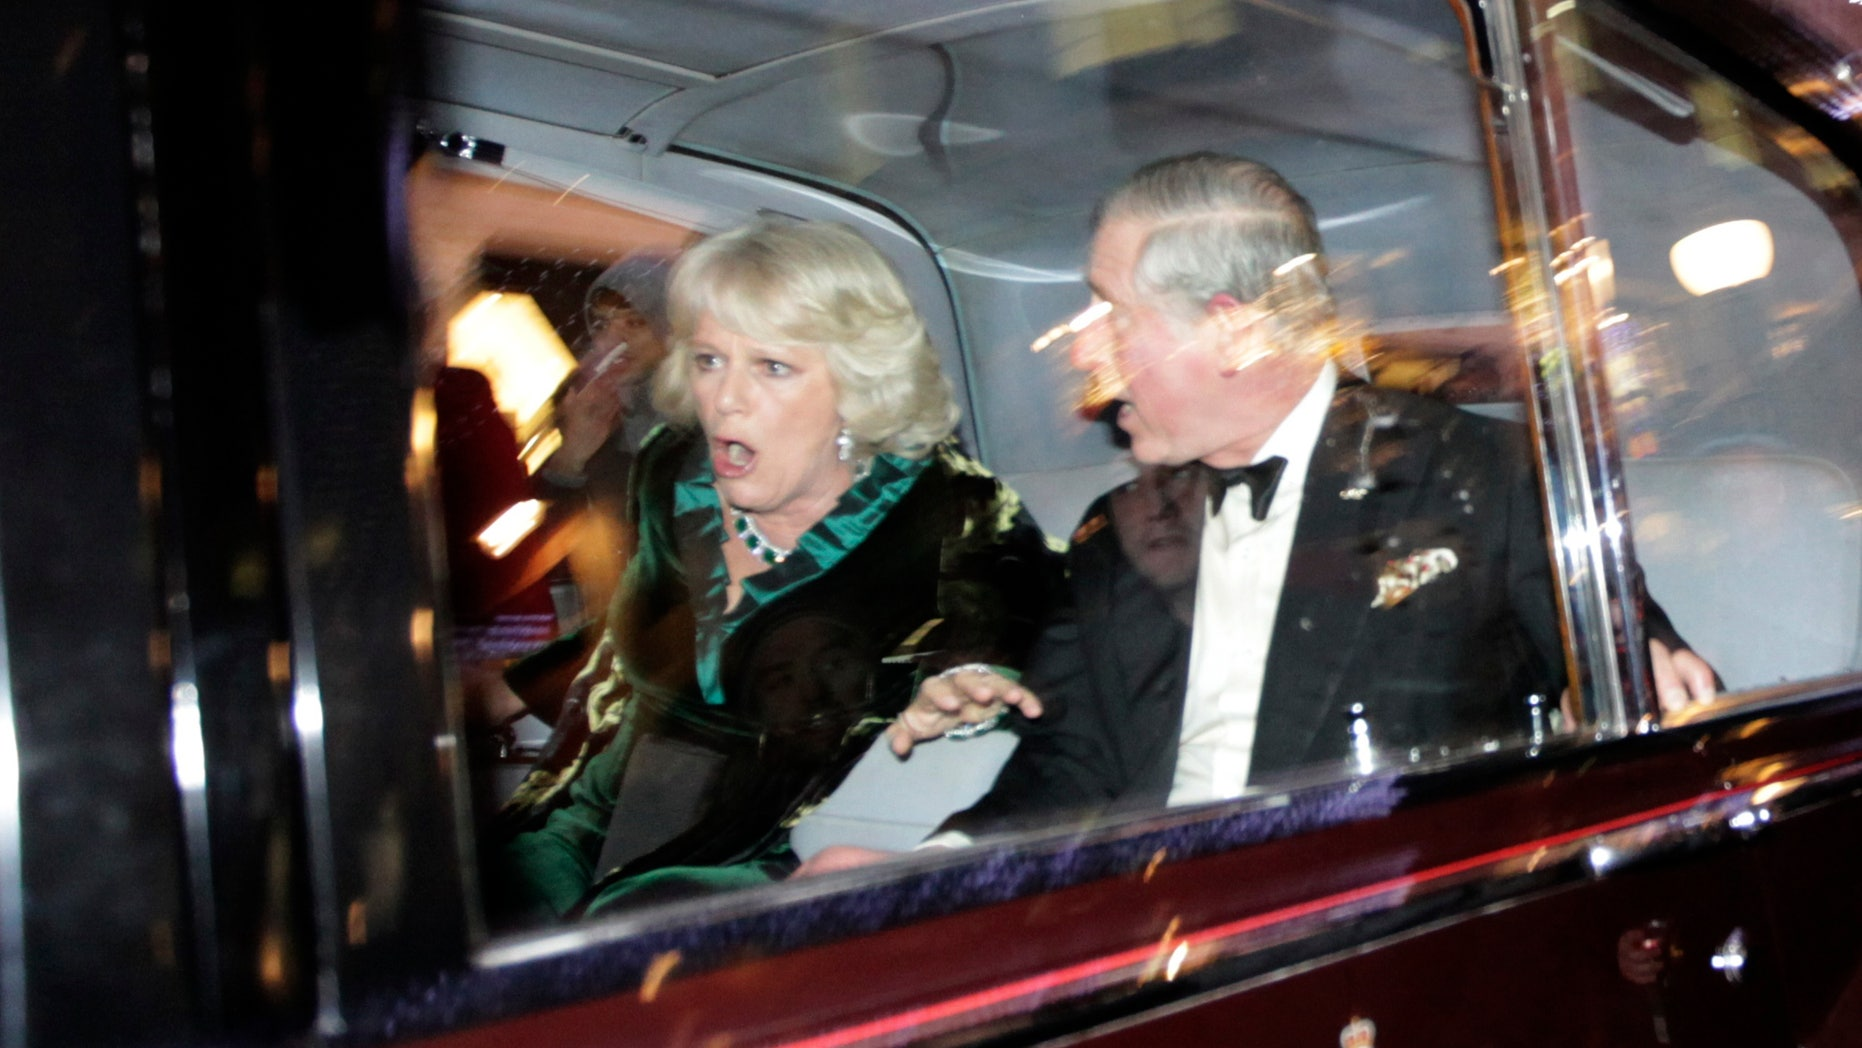 Dec. 9: Britain's Prince Charles and Camilla, Duchess of Cornwall, react as their car is attacked by angry protesters in London.